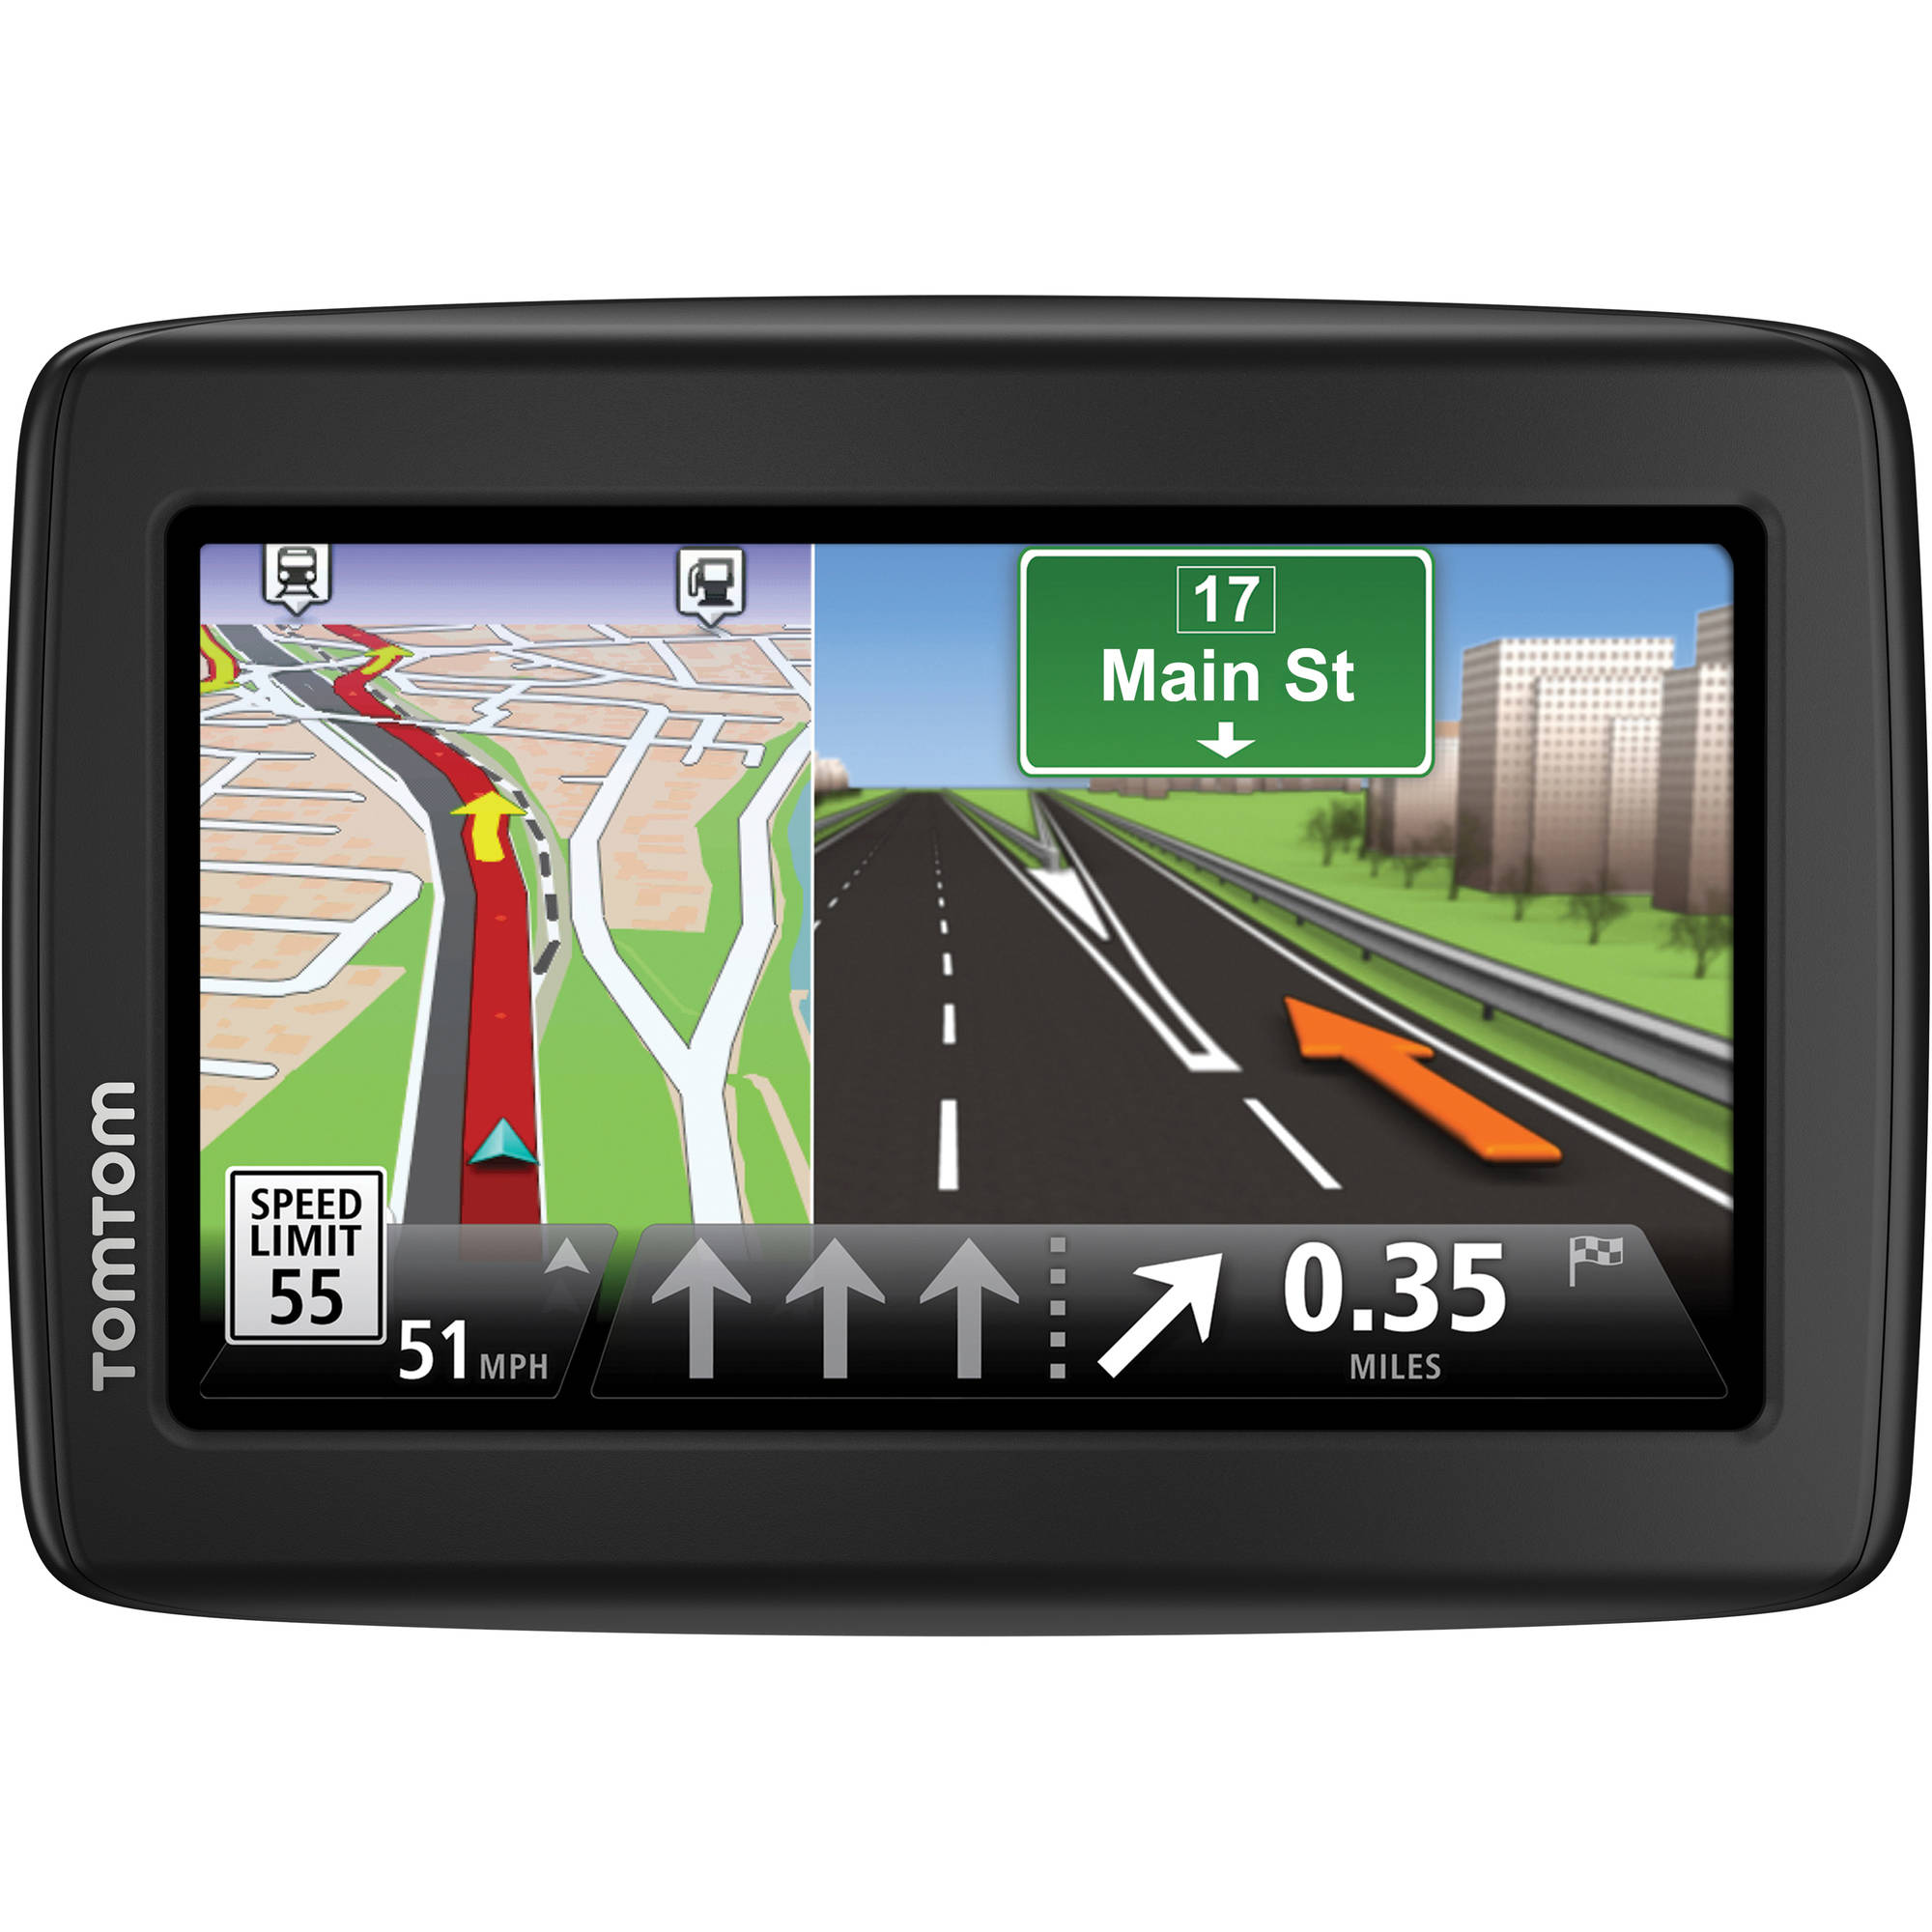 TomTom VIA 1515TM GPS Device with Lifetime Maps and Traffic by TomTom